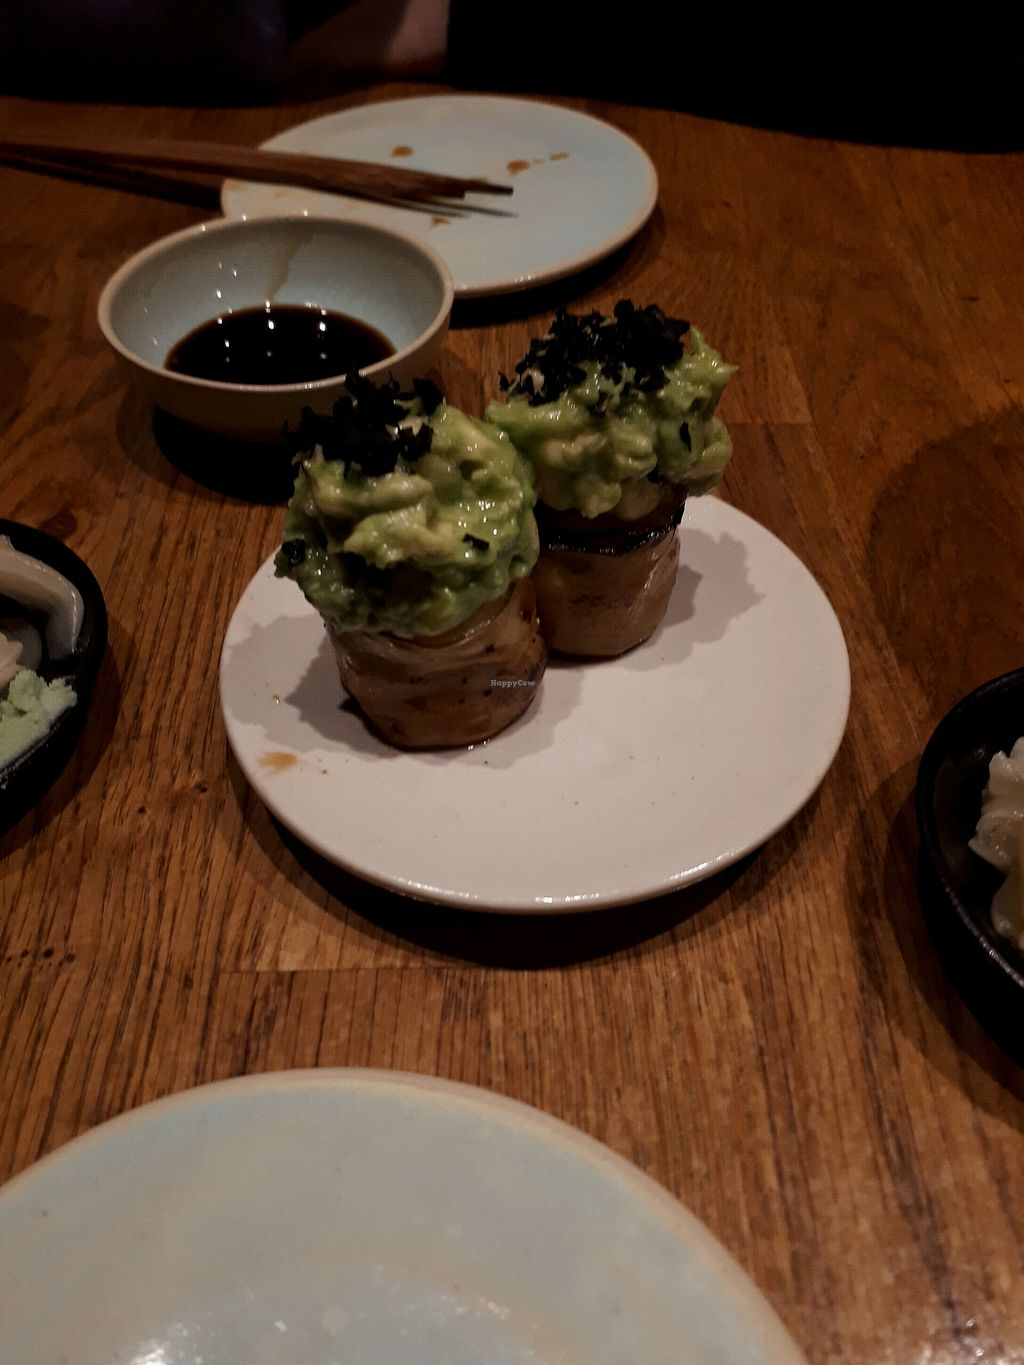 """Photo of Youmiko Vegan Sushi  by <a href=""""/members/profile/Aliz%C3%A9eMtn"""">AlizéeMtn</a> <br/>the amazing avocado and eggplant sushi <br/> January 22, 2018  - <a href='/contact/abuse/image/68693/349867'>Report</a>"""